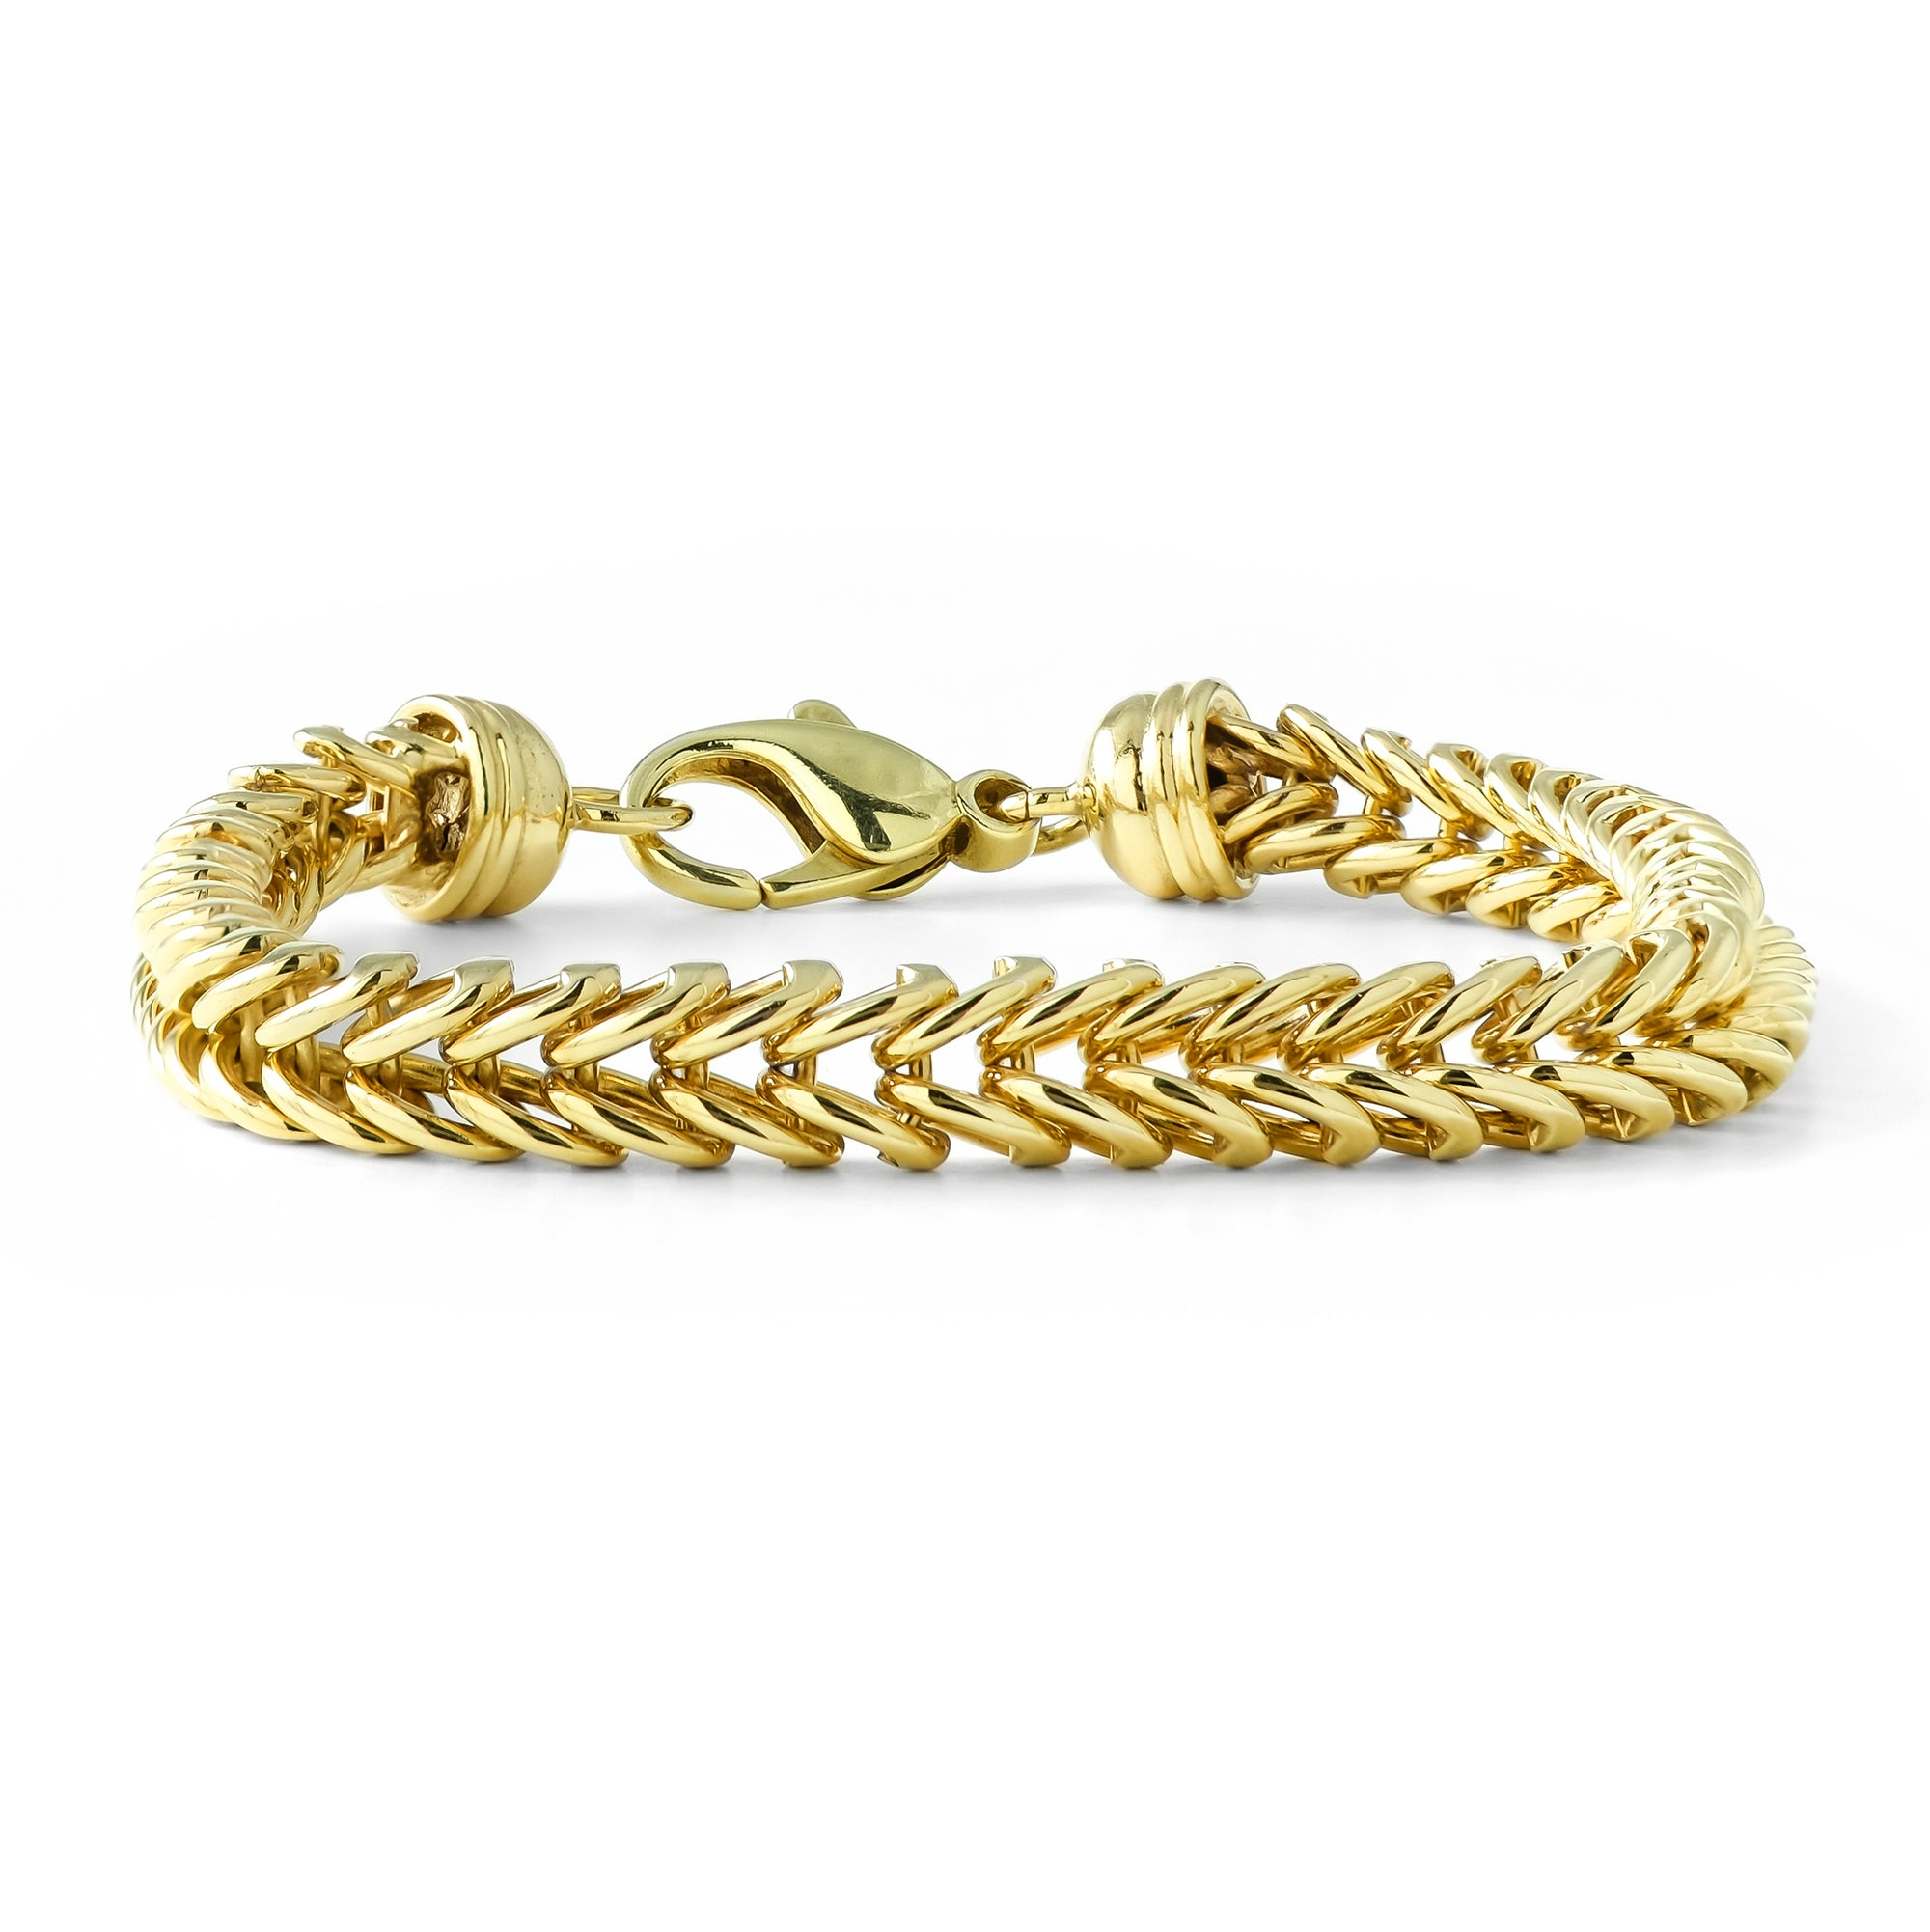 Vintage 9ct Yellow Gold Foxtail Bracelet